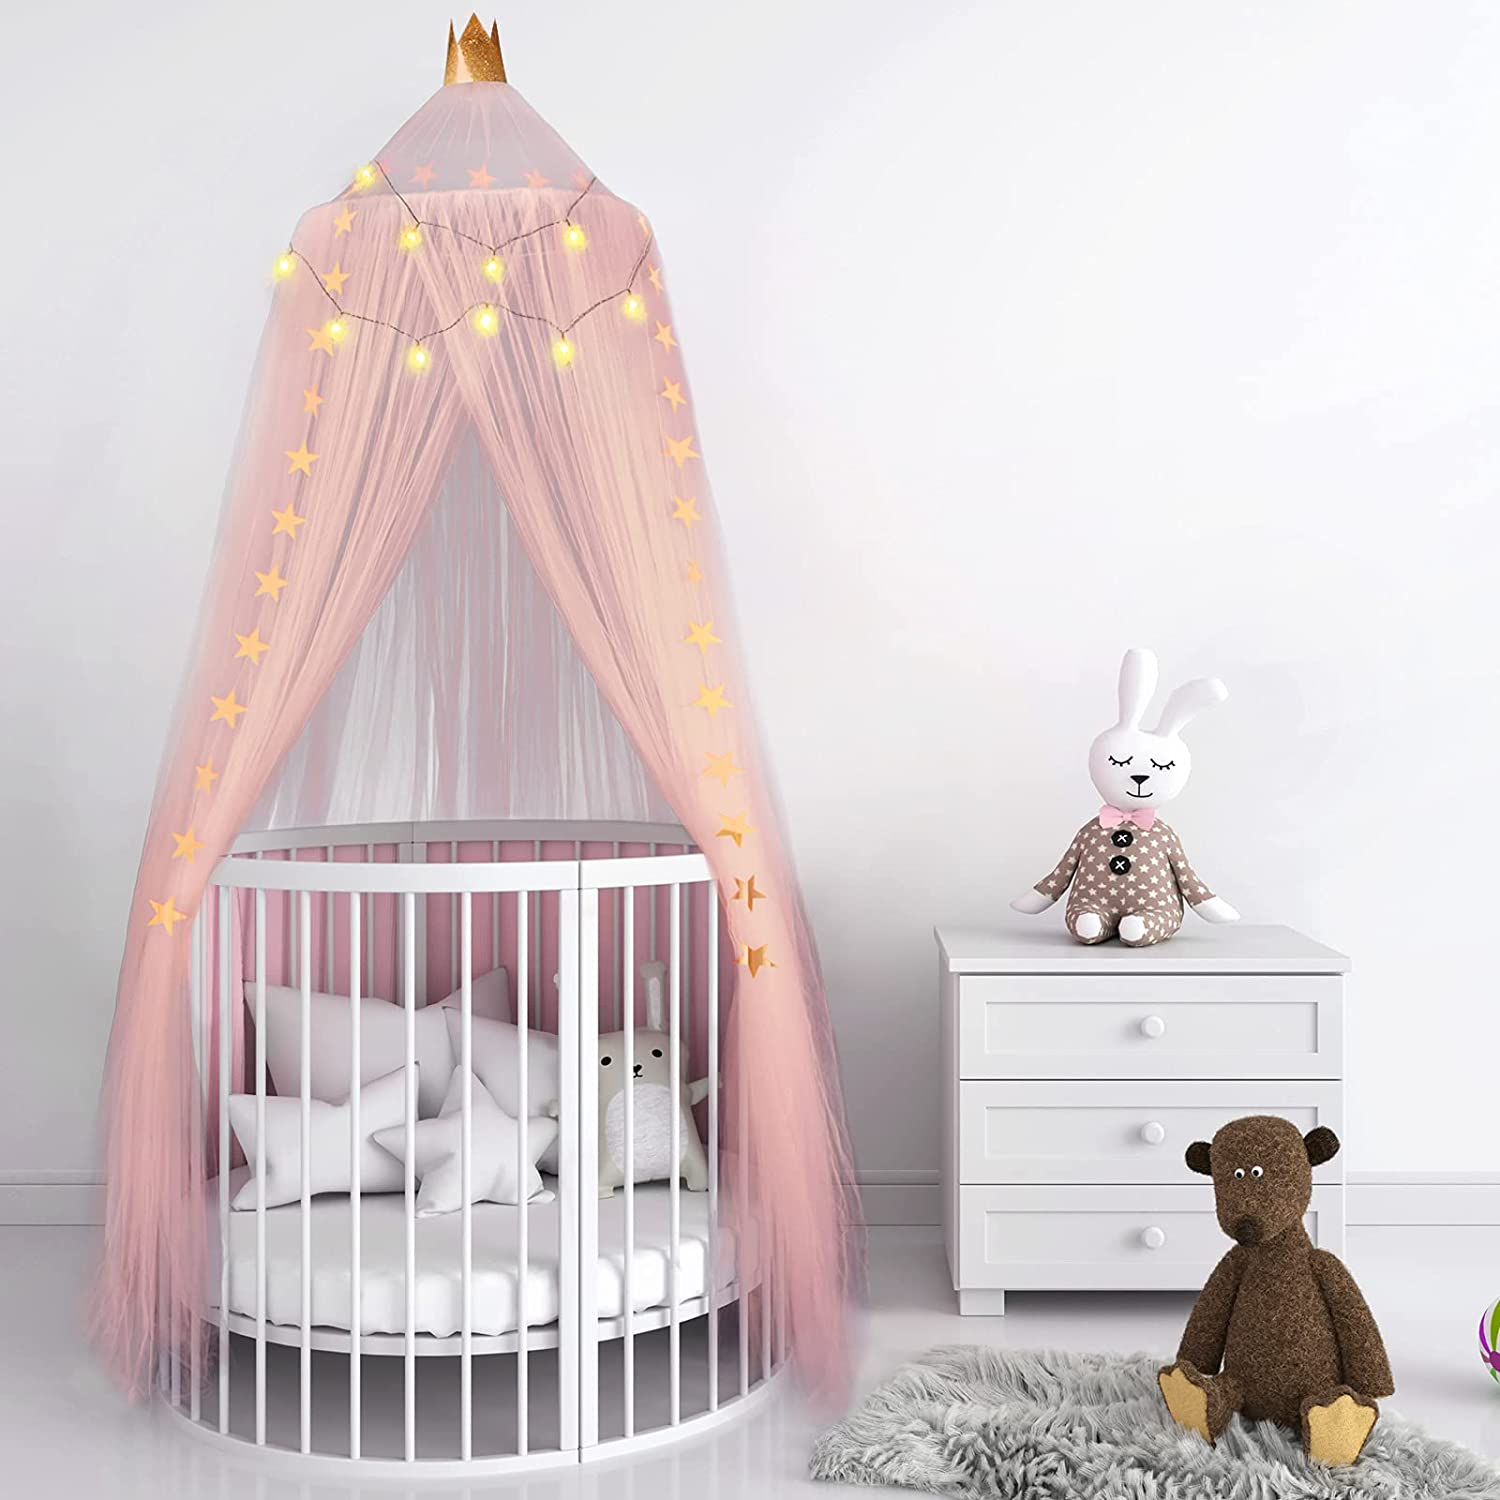 Crib Princess Bed Canopy Yarn Net Bed Canopy Breathable Dome Tent Baby Crib Crown Canopy Indoor Outdoor Castle Hanging Decor with Star Light String 94.5 x 23.6 Inch for Kids Room Bed (Pink)